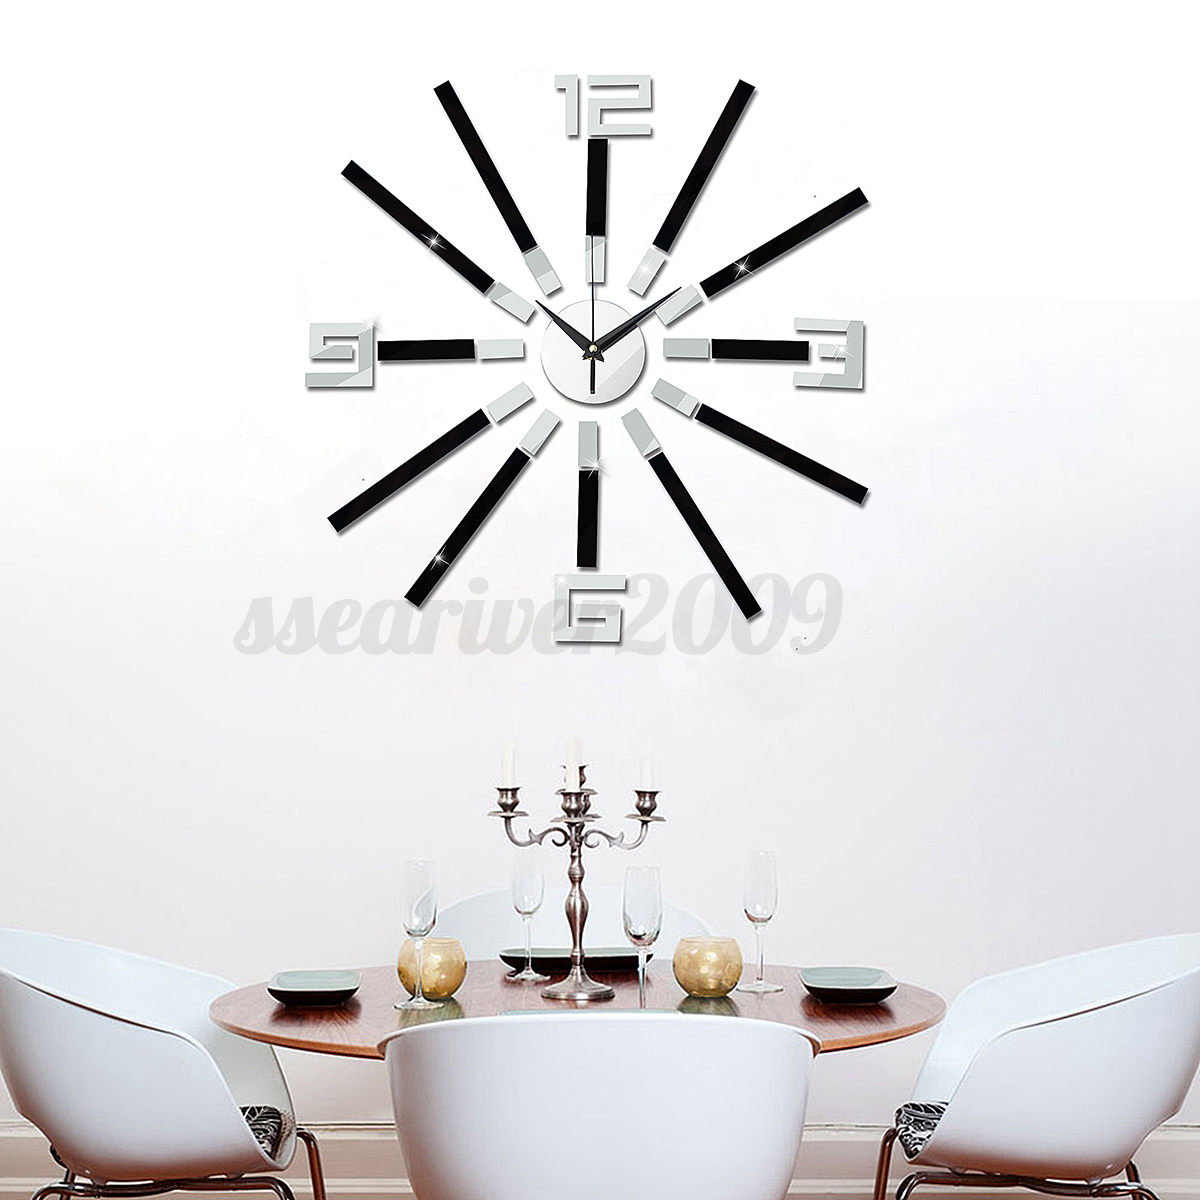 Large Number Wall Decor : Modern diy analog d mirror surface large number wall